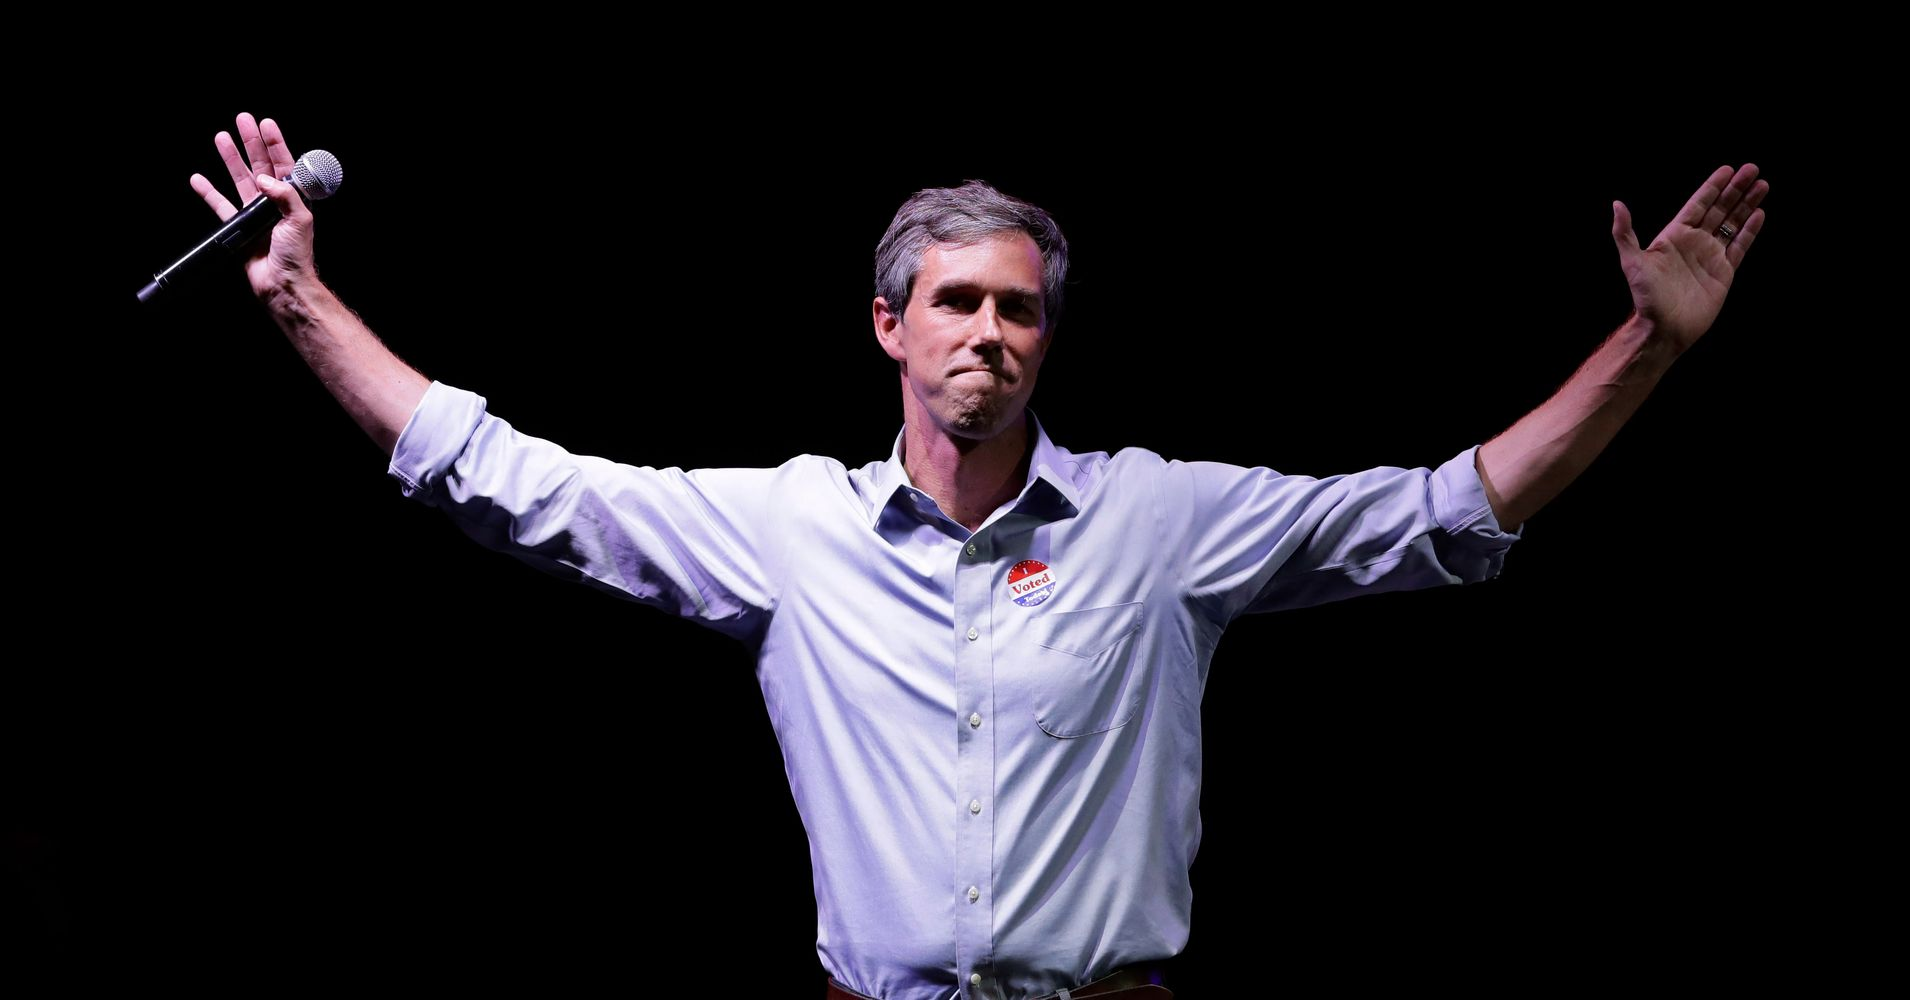 Beto O'Rourke Reportedly Spoke With Al Sharpton As 2020 Speculation Swirls